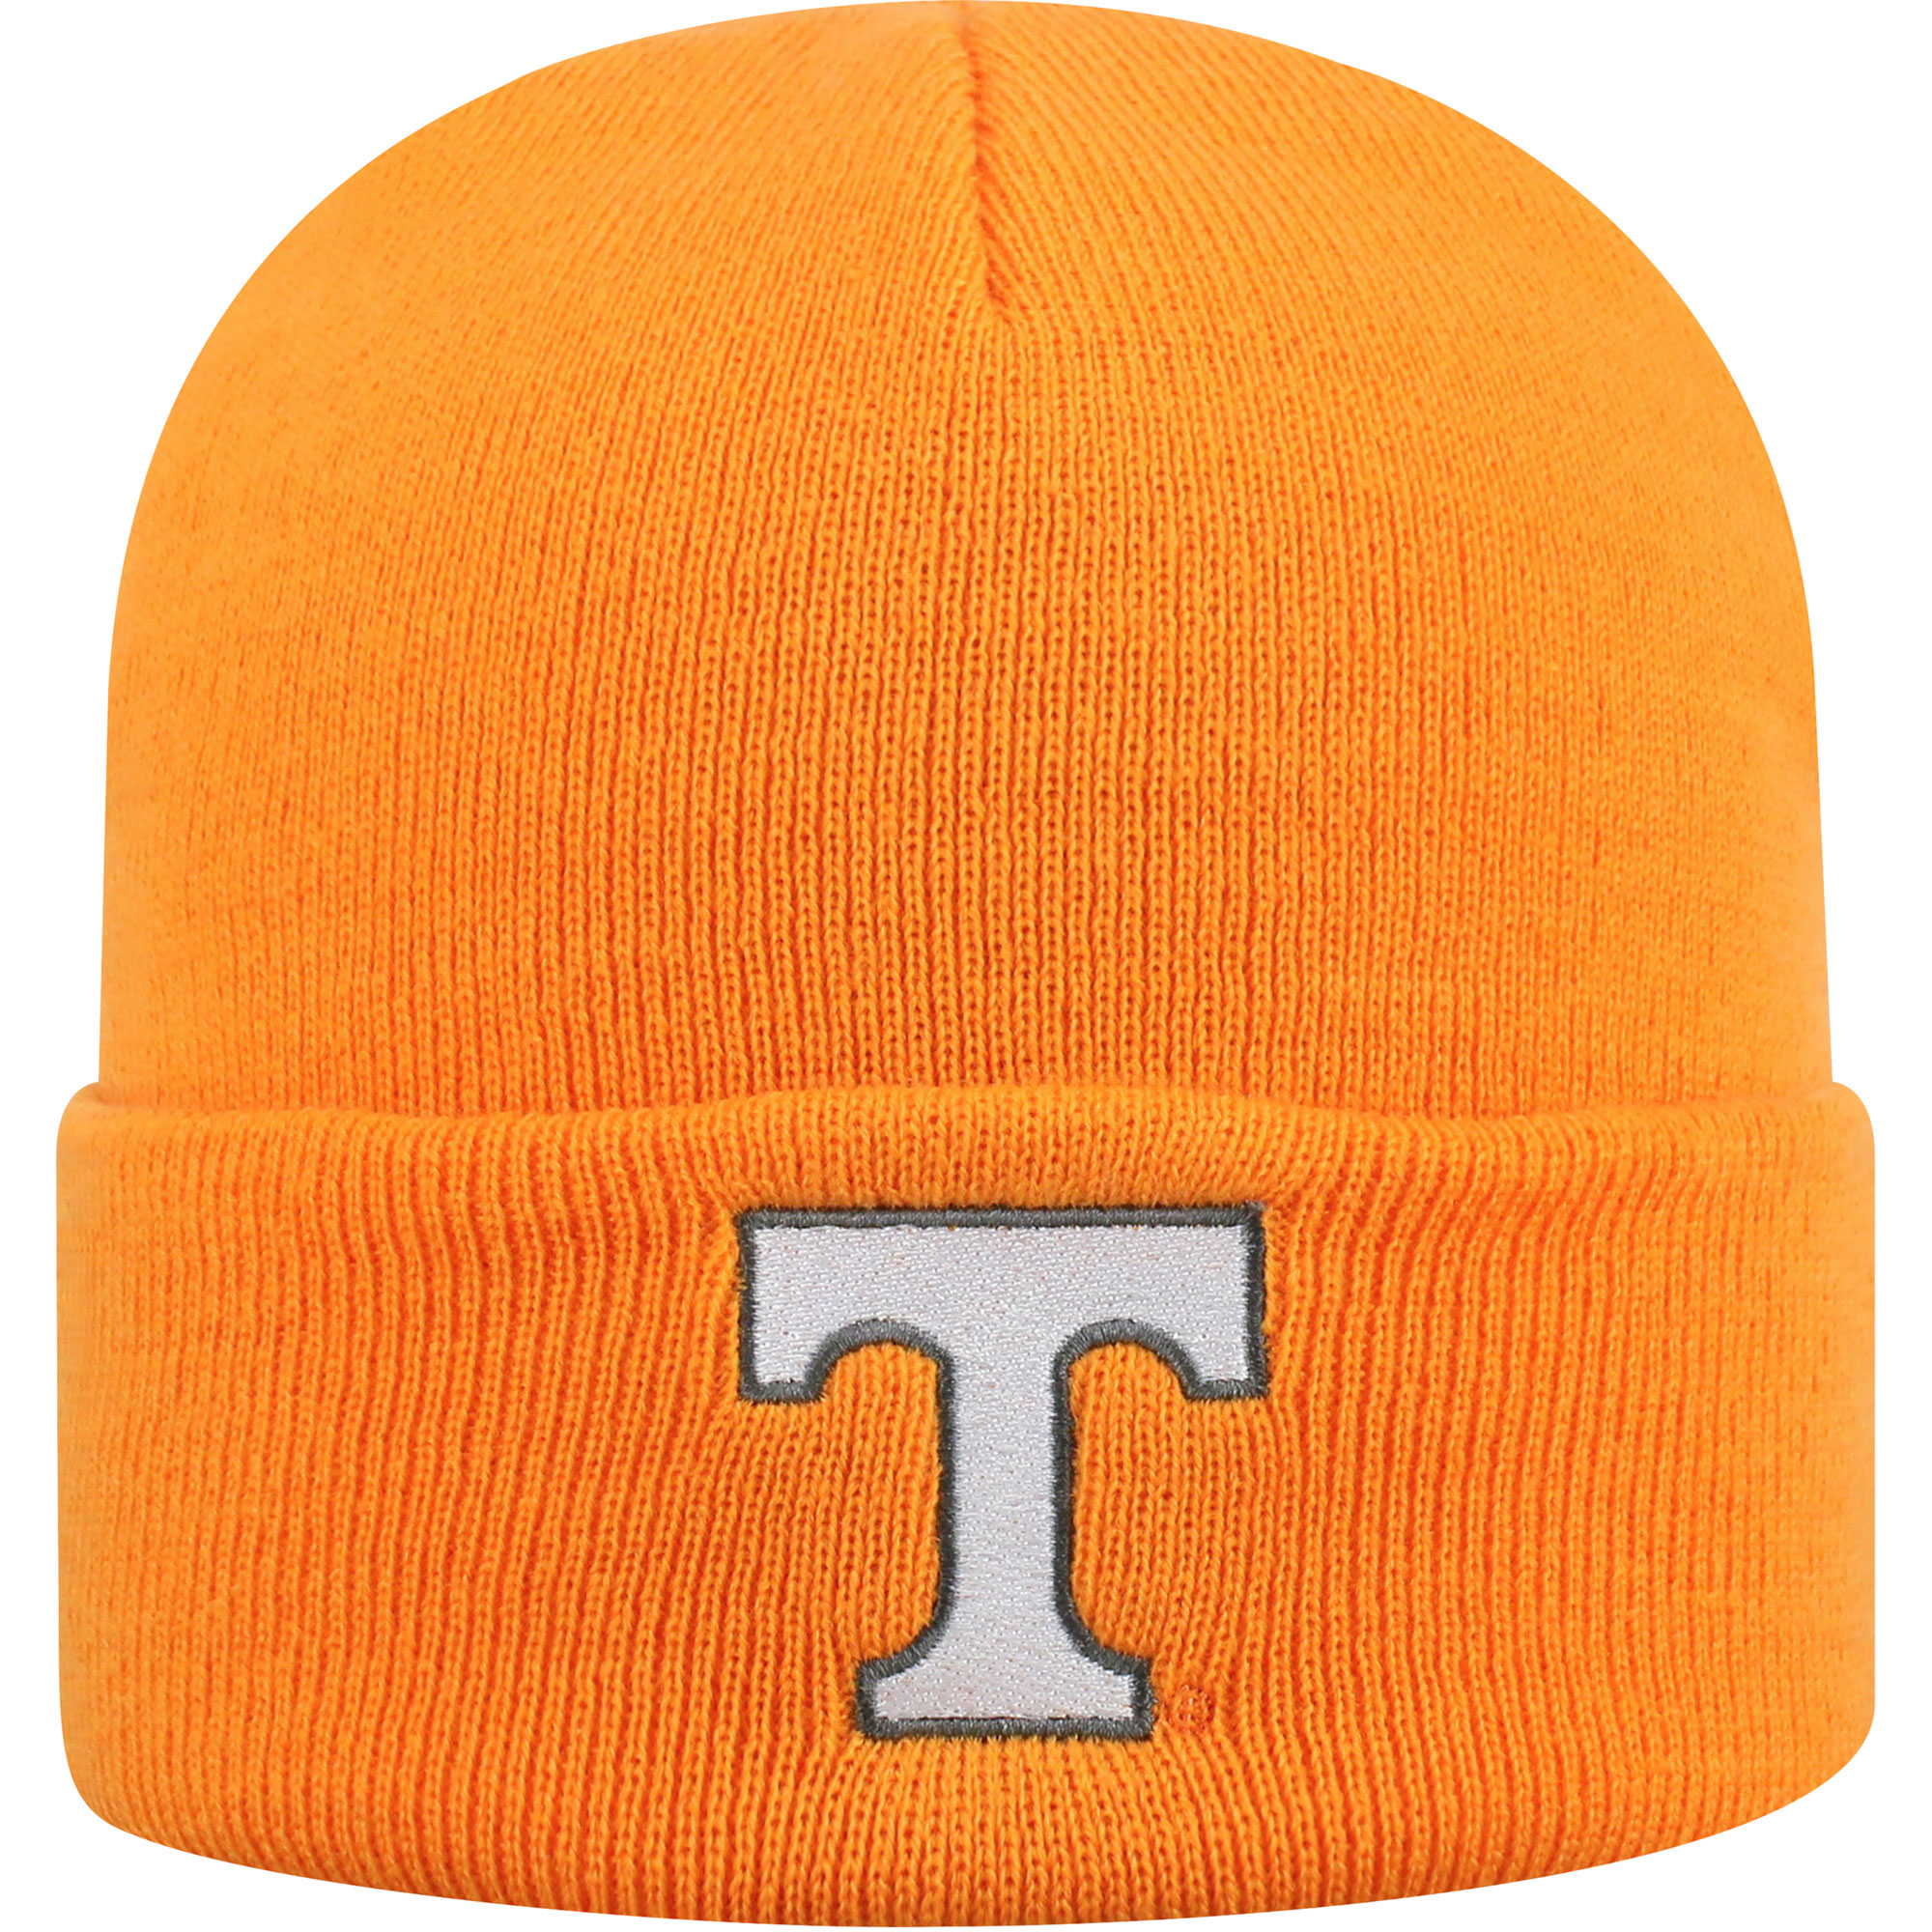 Men's Russell Tennessee Orange Tennessee Volunteers Team Cuffed Knit Hat - OSFA